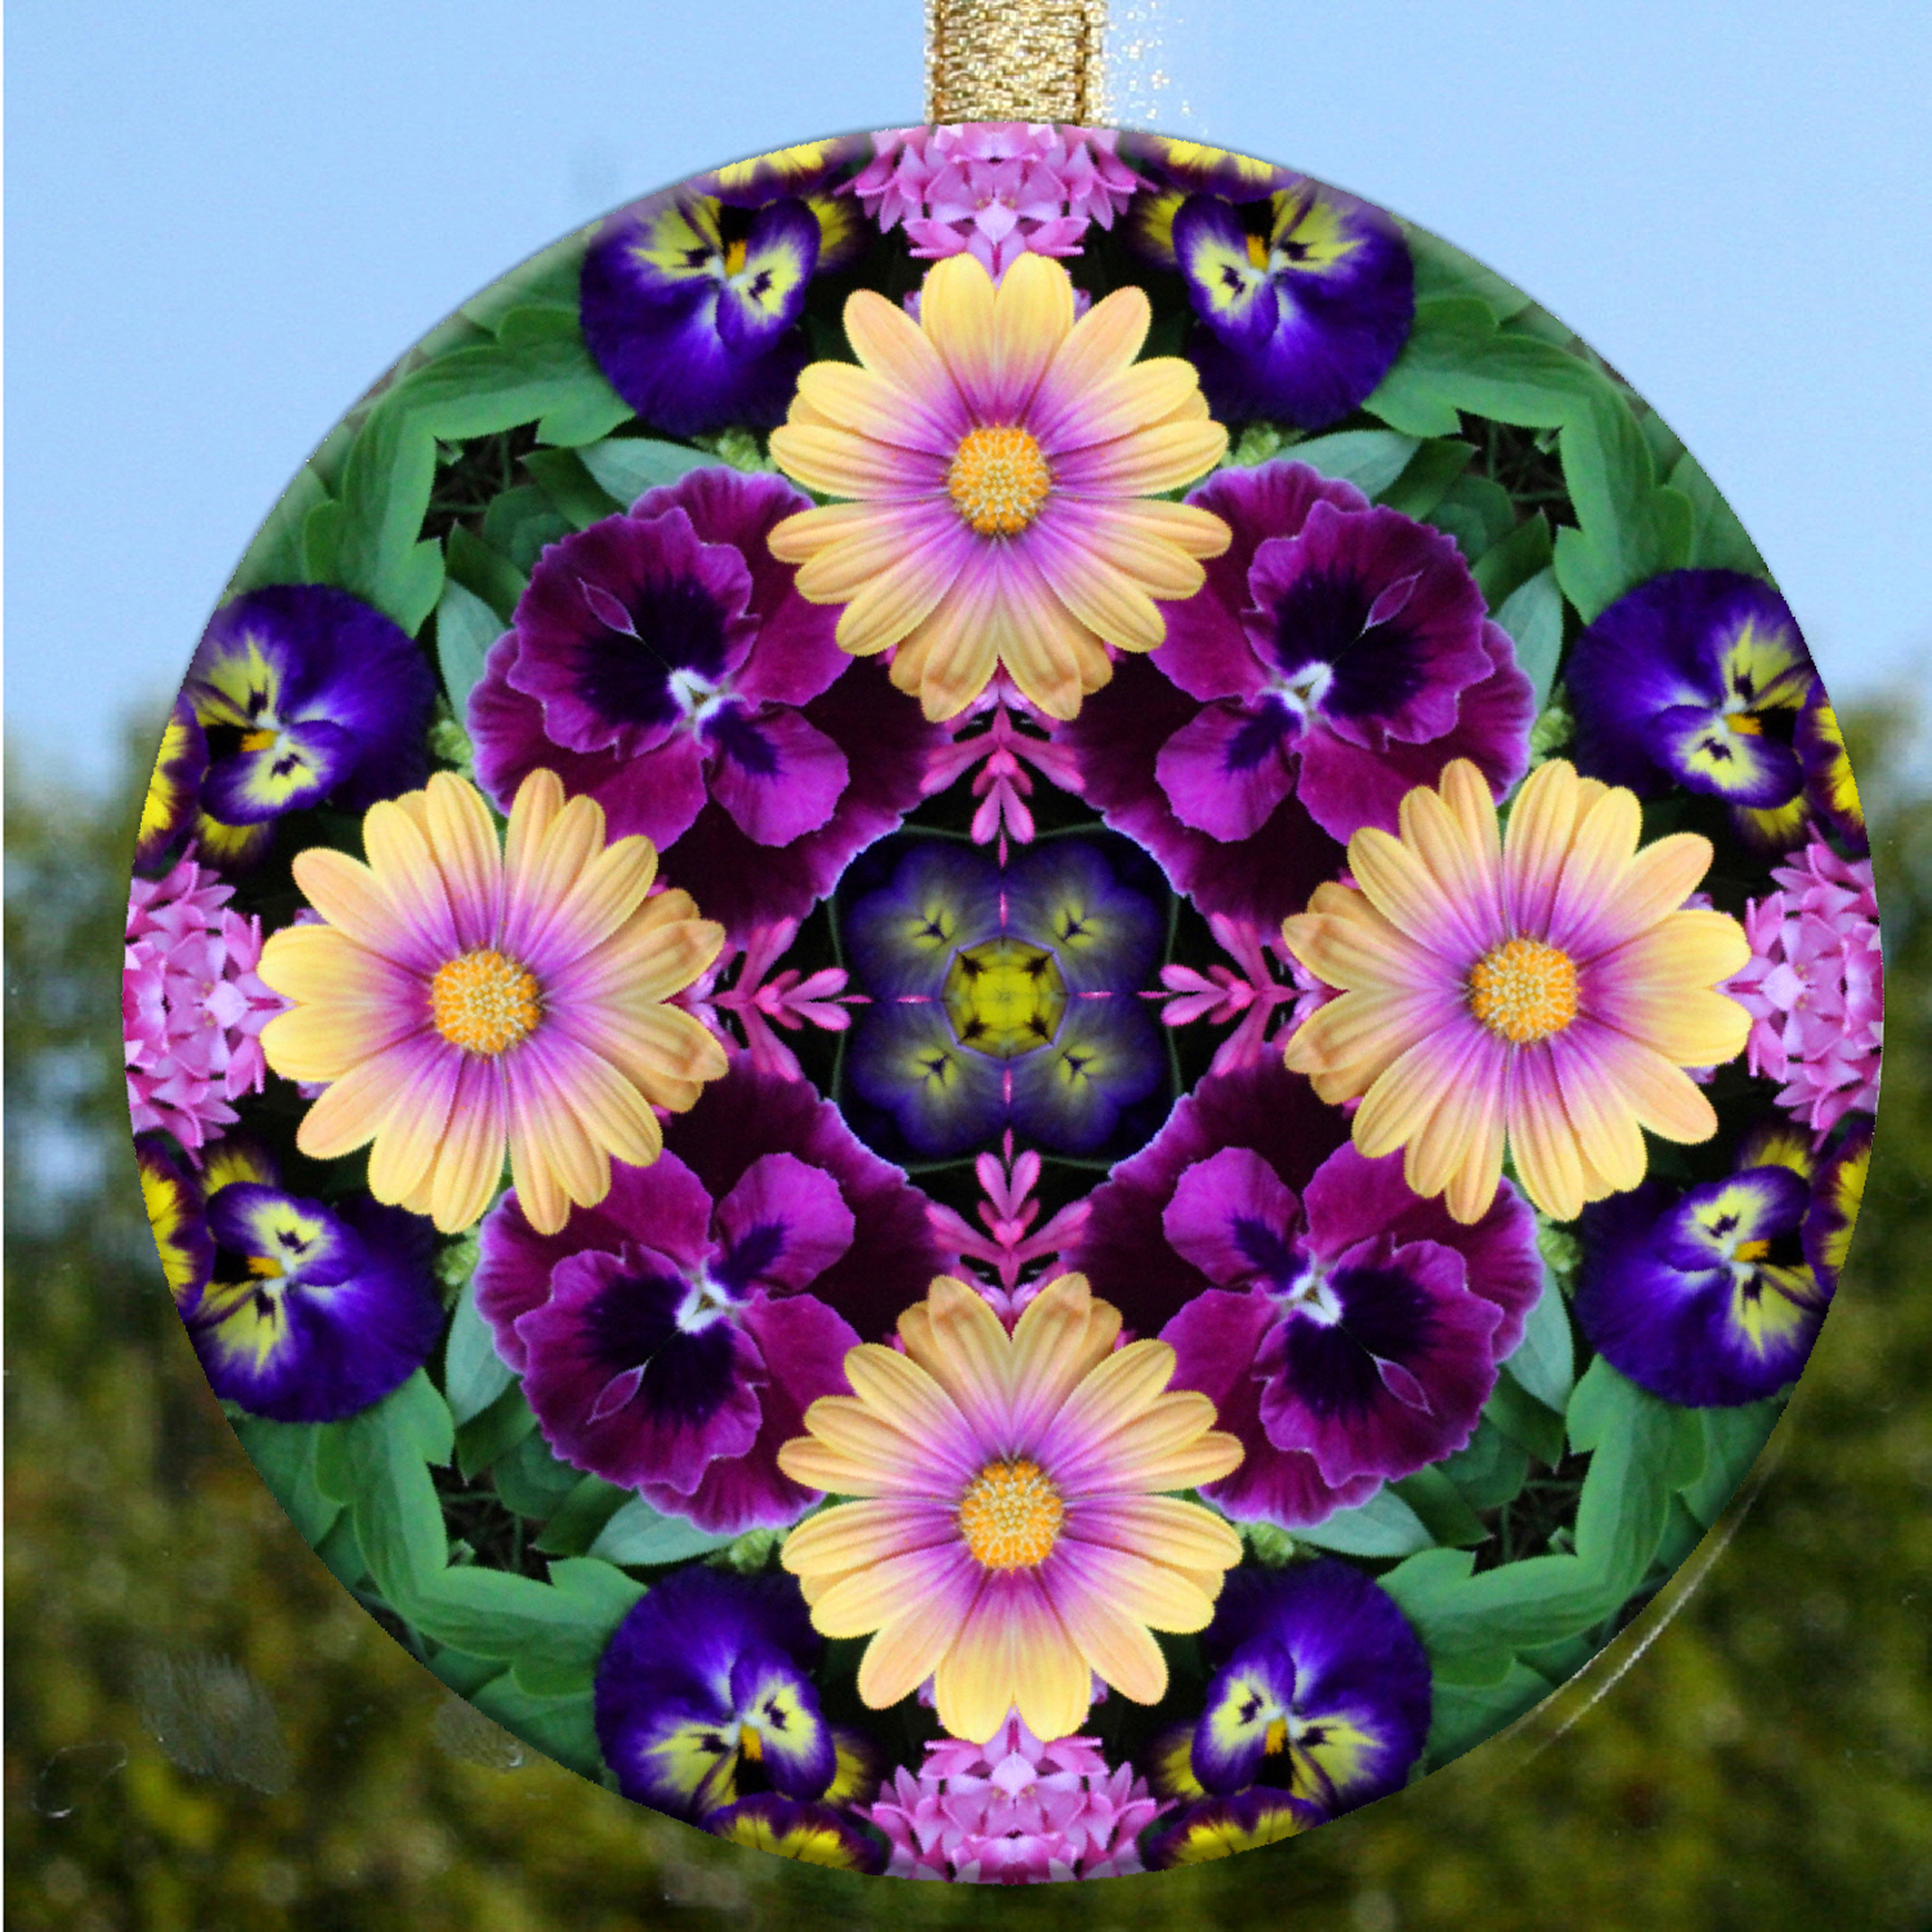 Daisy Glass Suncatcher Home Ornament Window Decor Unique Gifts Peaceful Ambiance